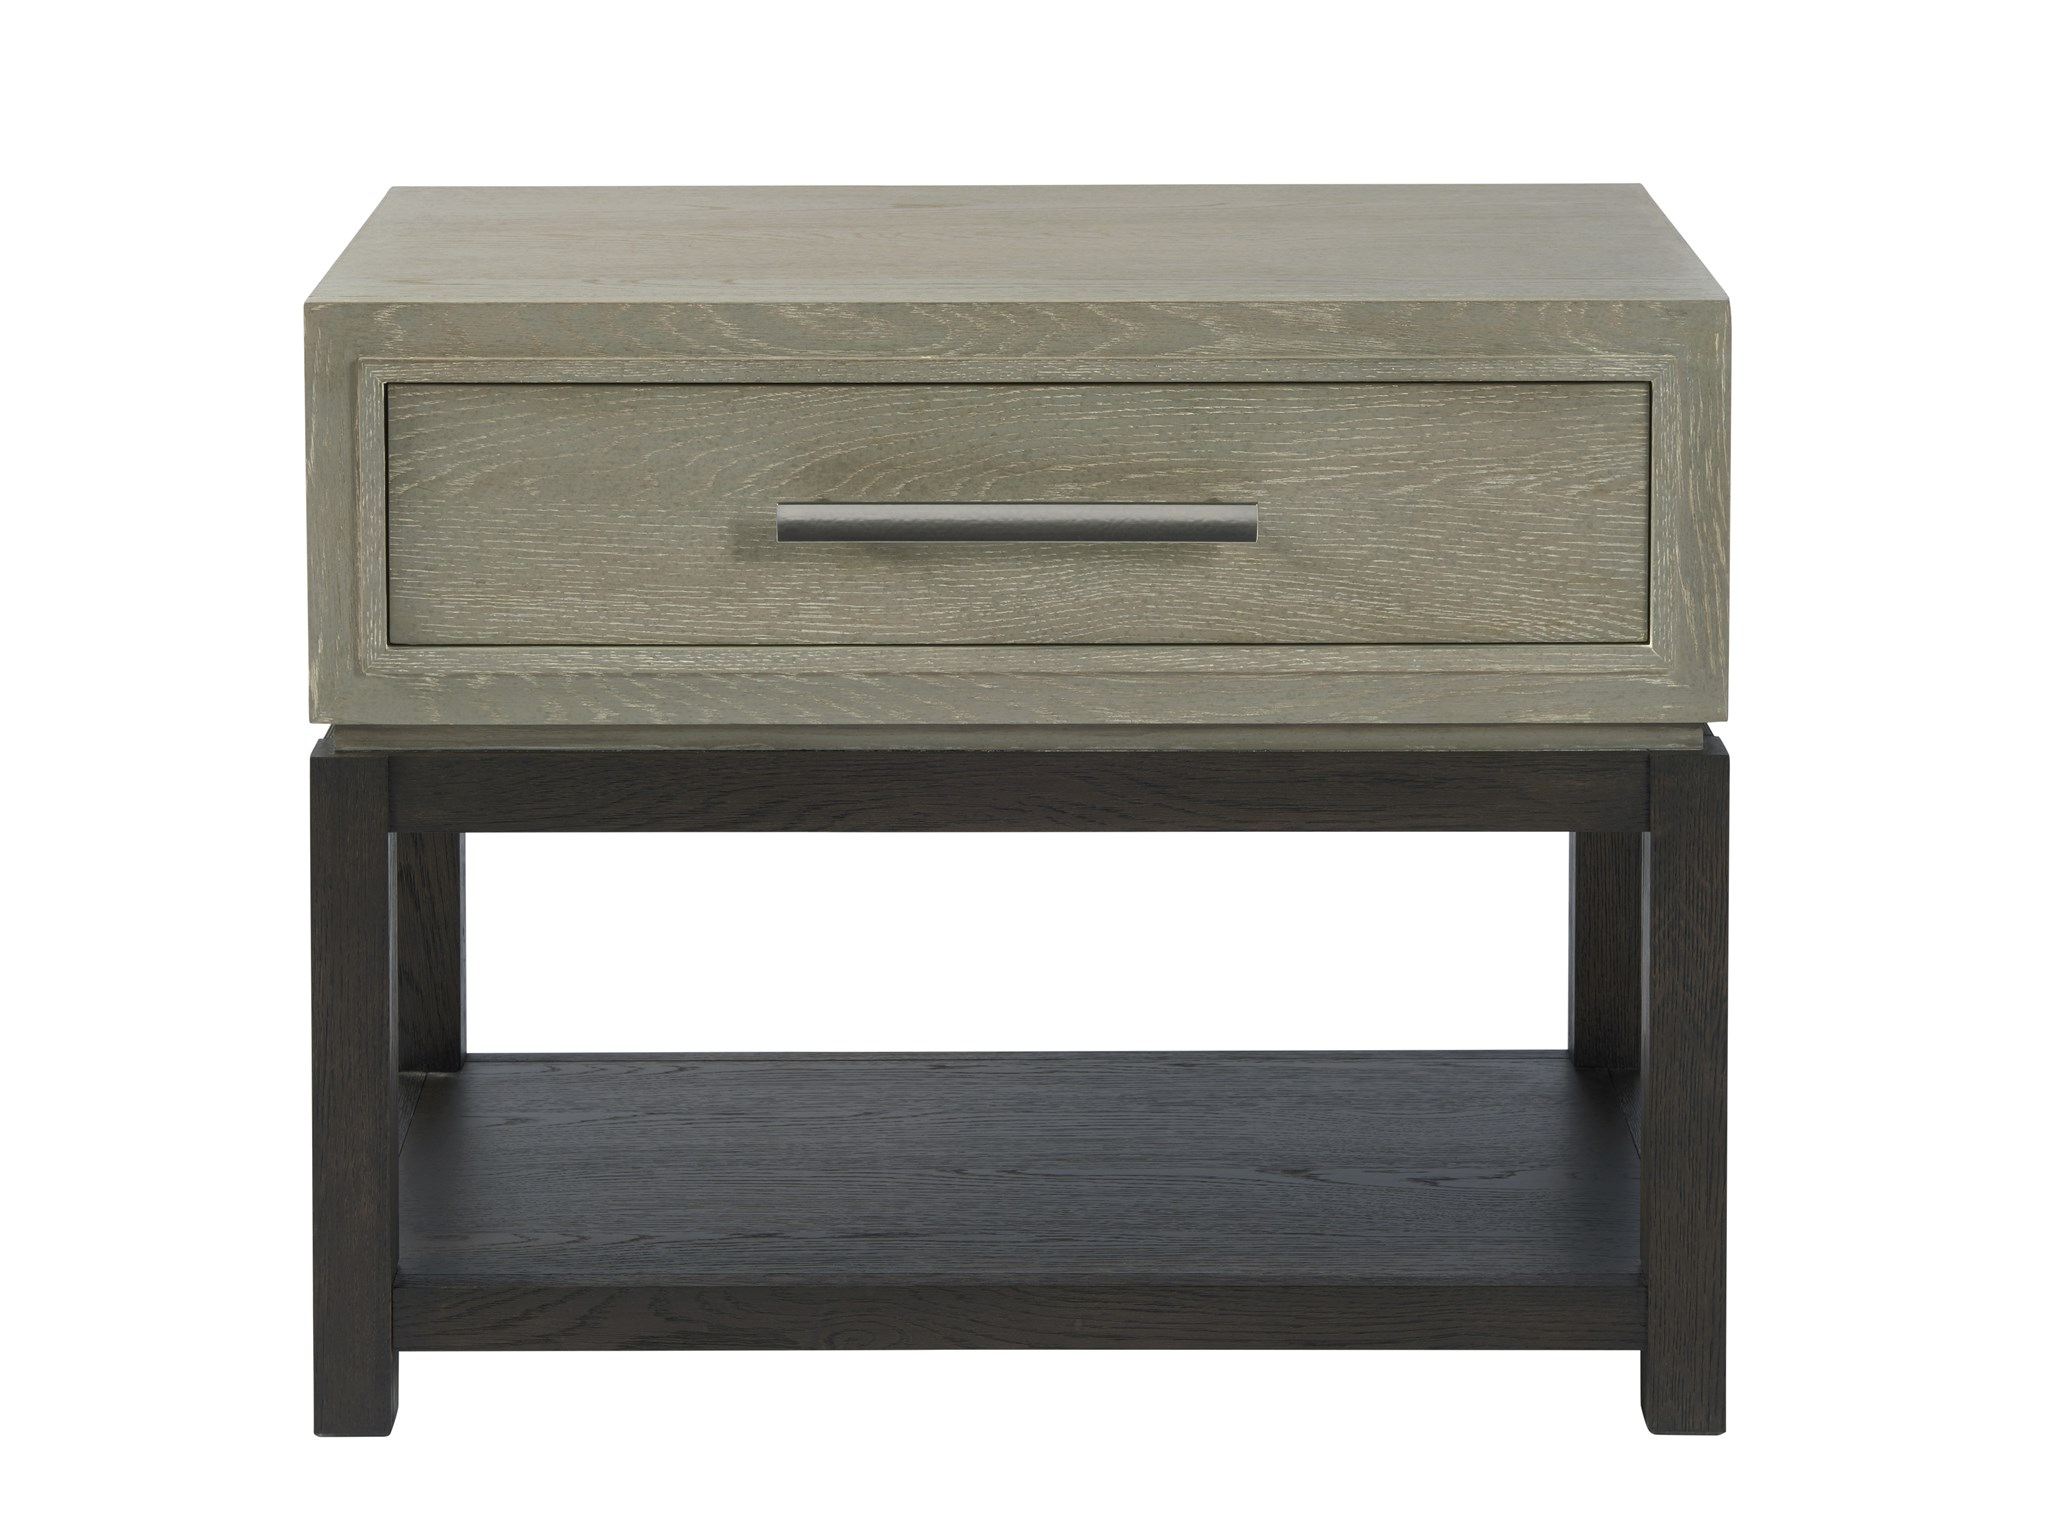 Zephyr Night Table   Savvy Furniture Inside Rey Coastal Chic Universal Console 2 Drawer Tv Stands (View 10 of 20)